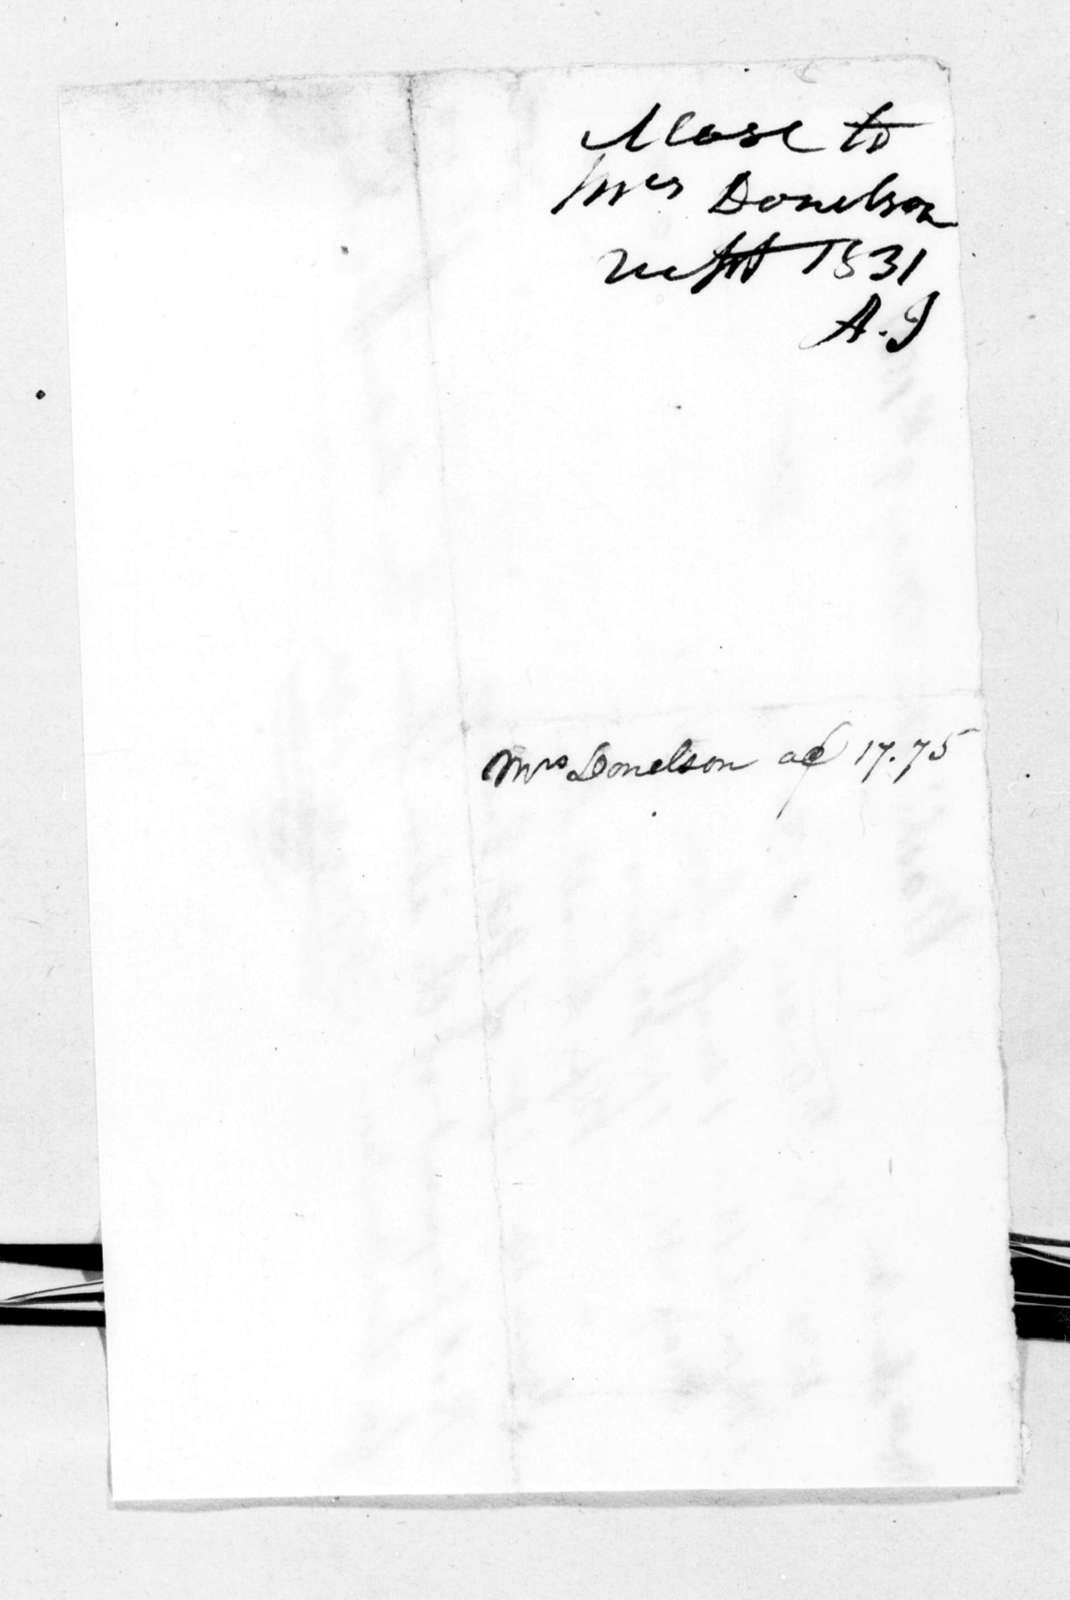 F. Masi & Co. to Elizabeth Donelson, May 9, 1831